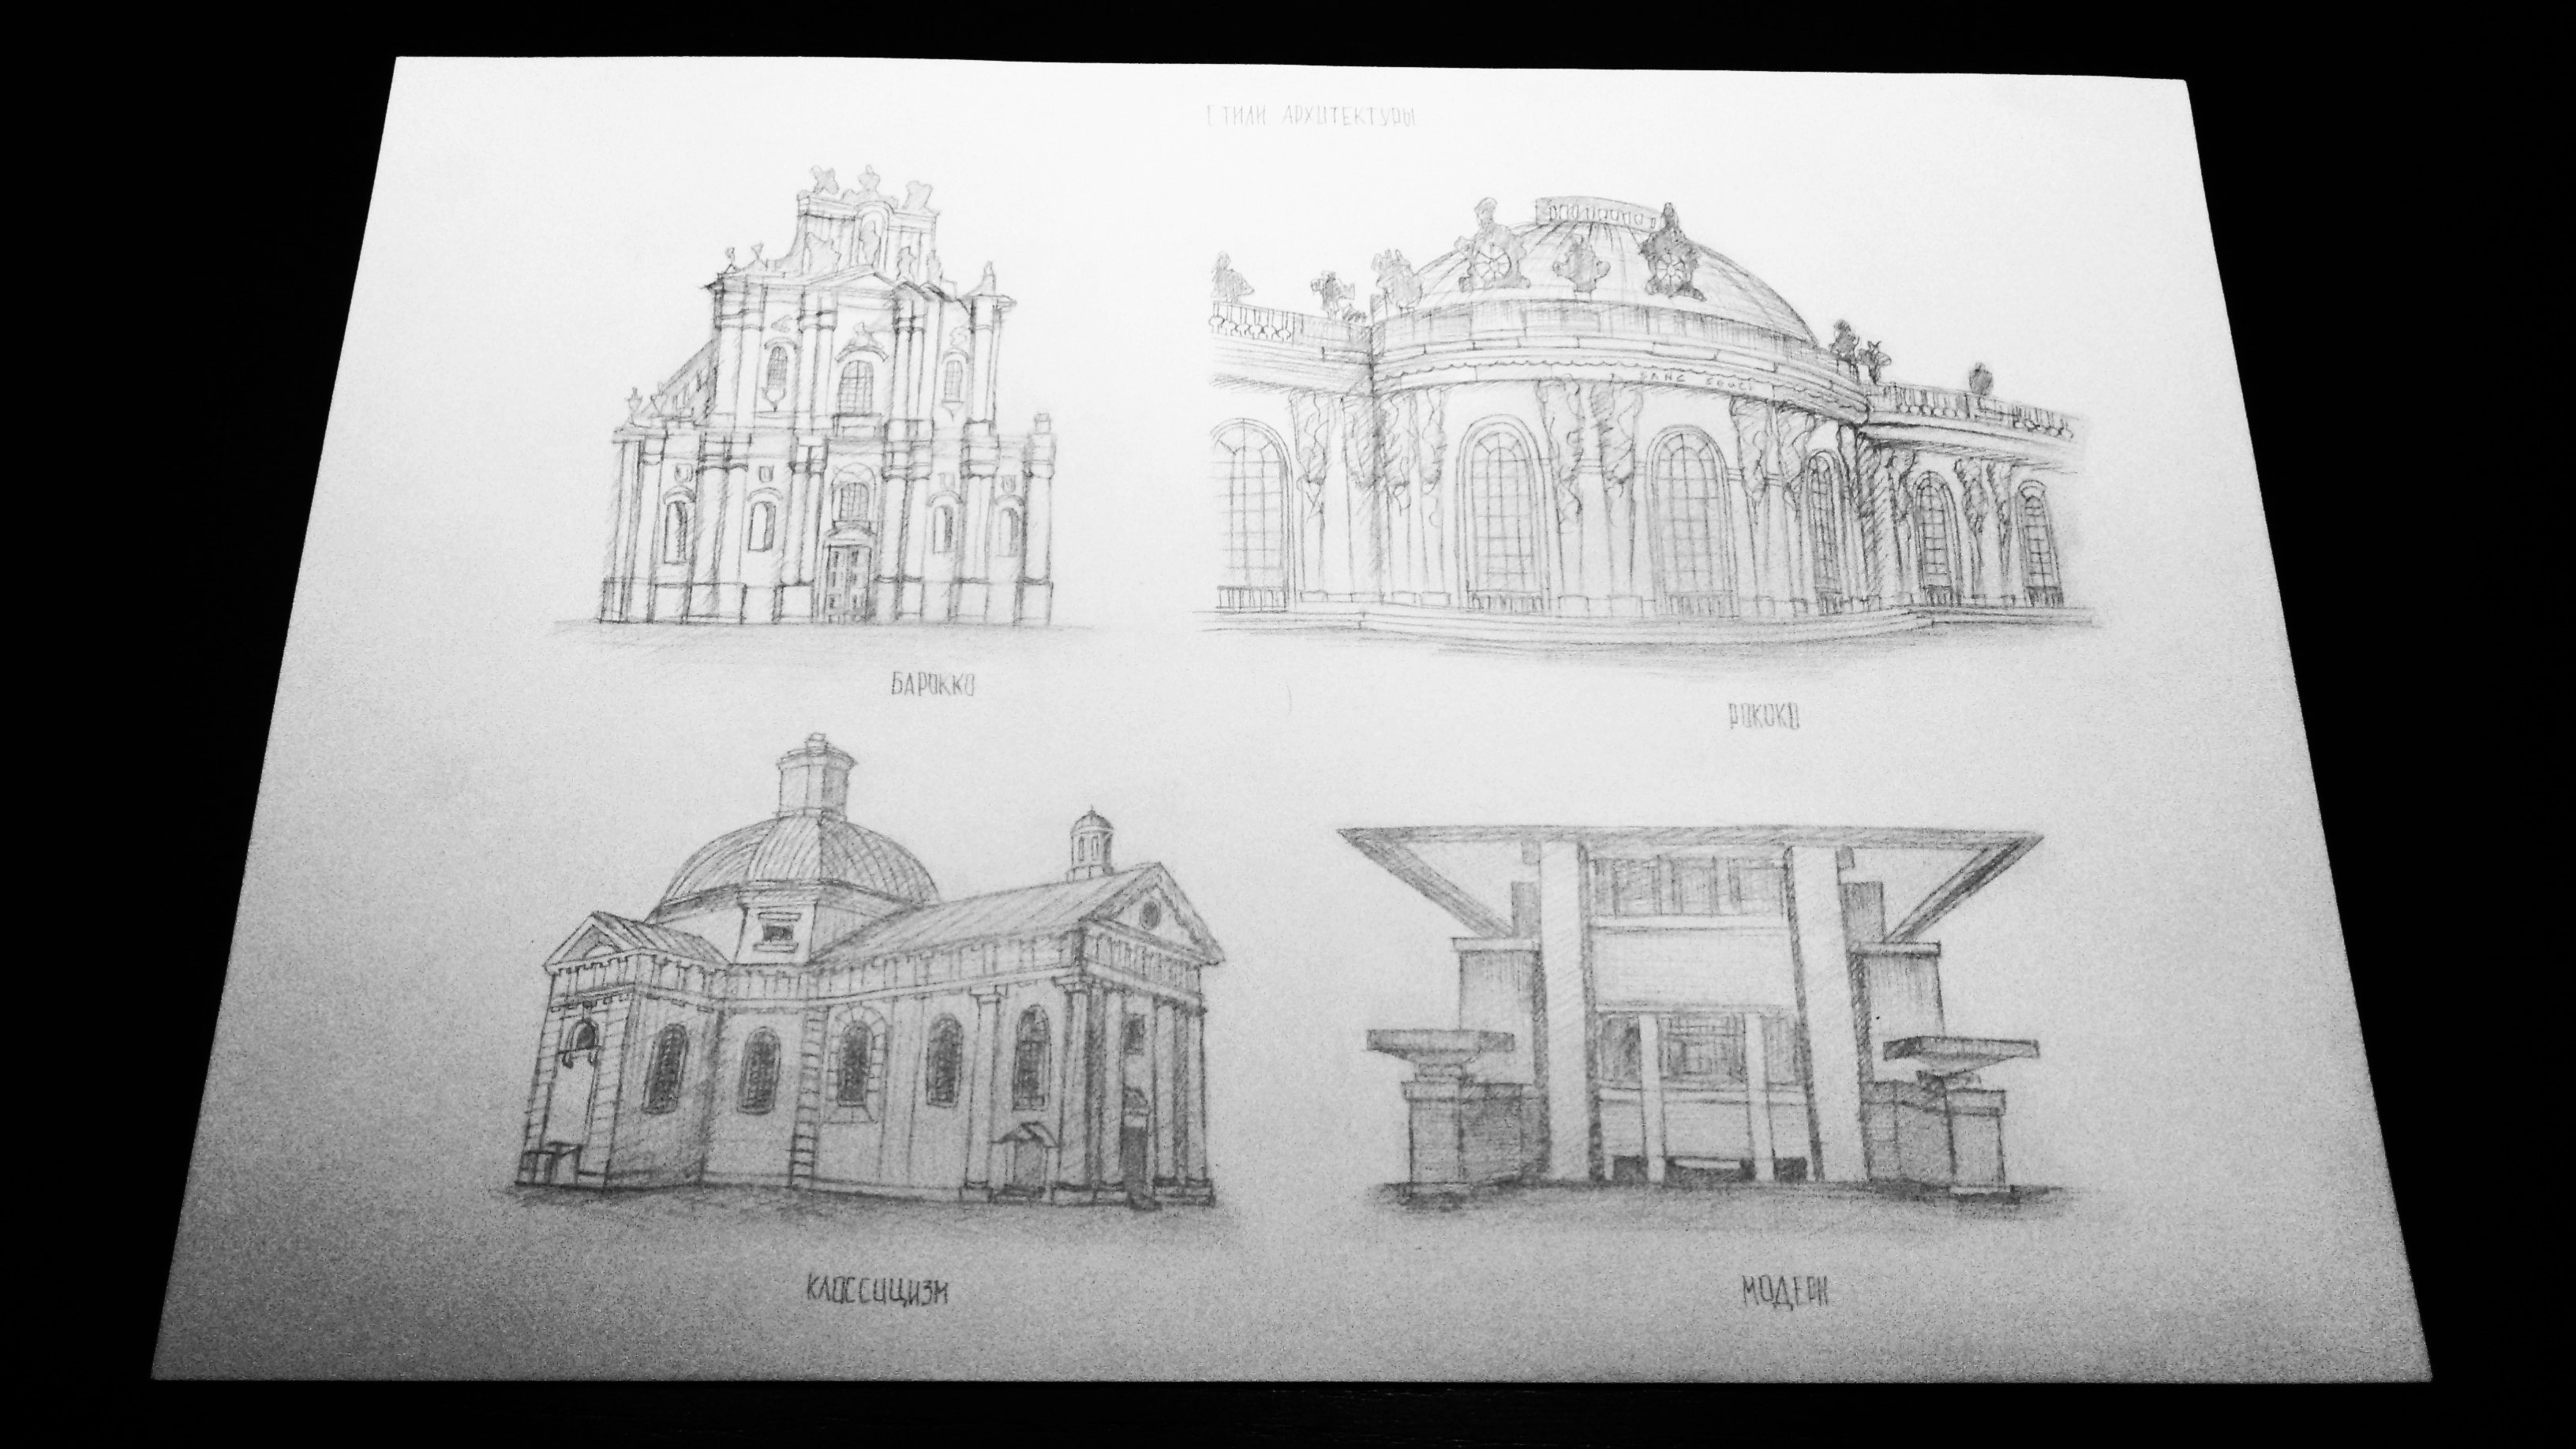 Architecture's styles